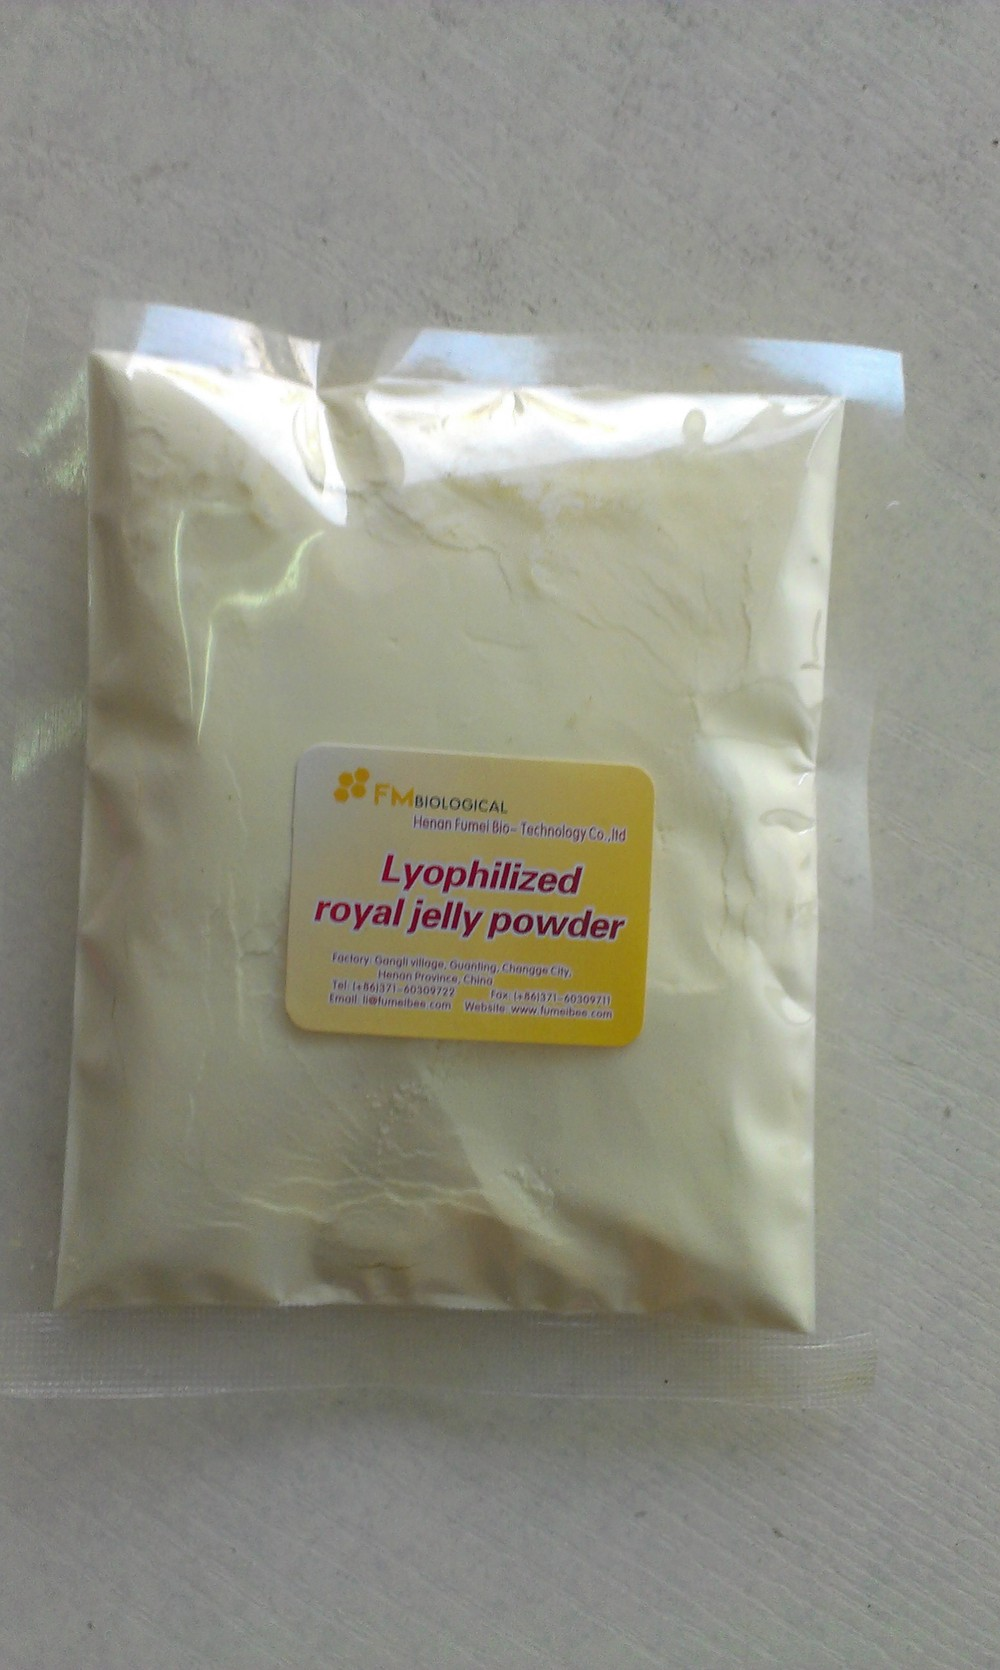 antibotic free high quality lyophiled/ freeze dried royal jelly powder